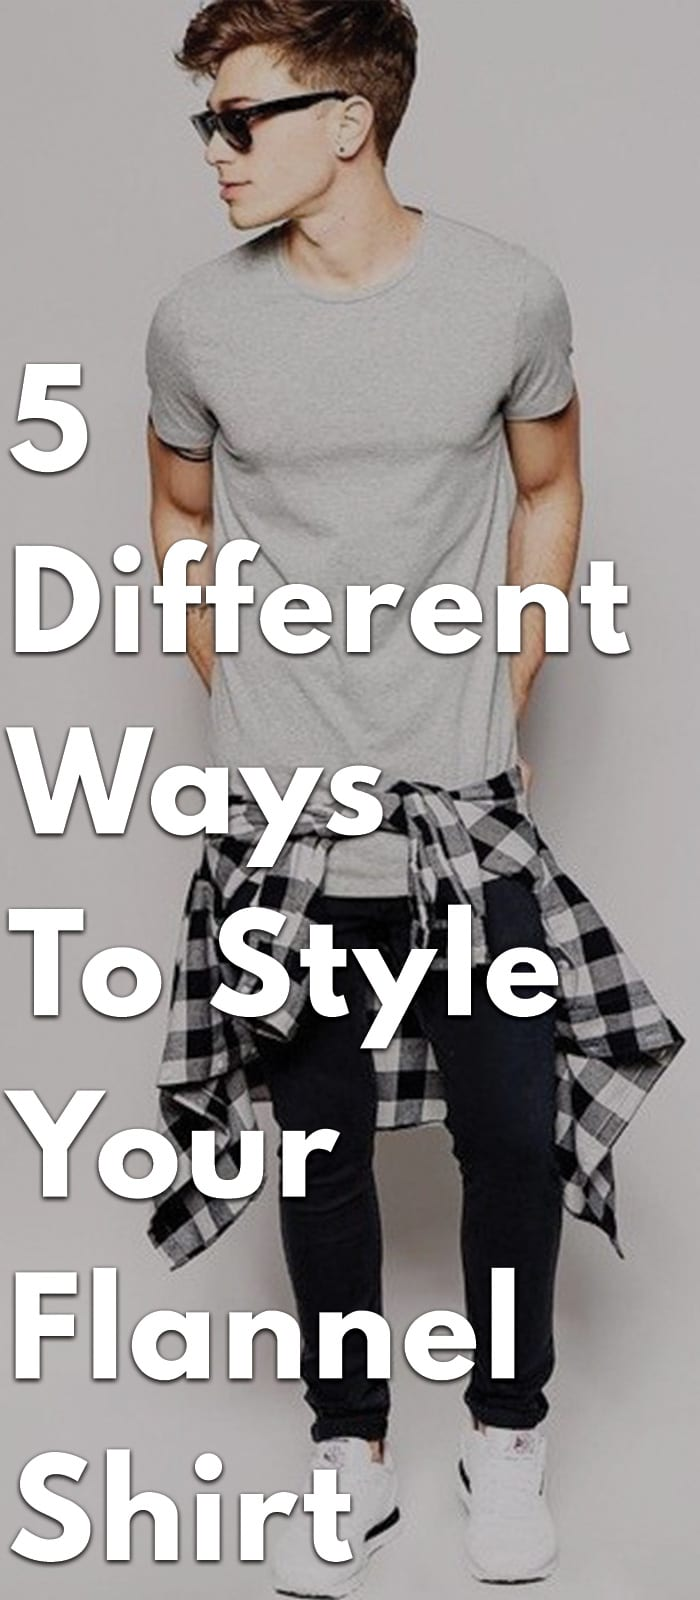 5-Ways-to-Style-Your-Flannel-Shirt.